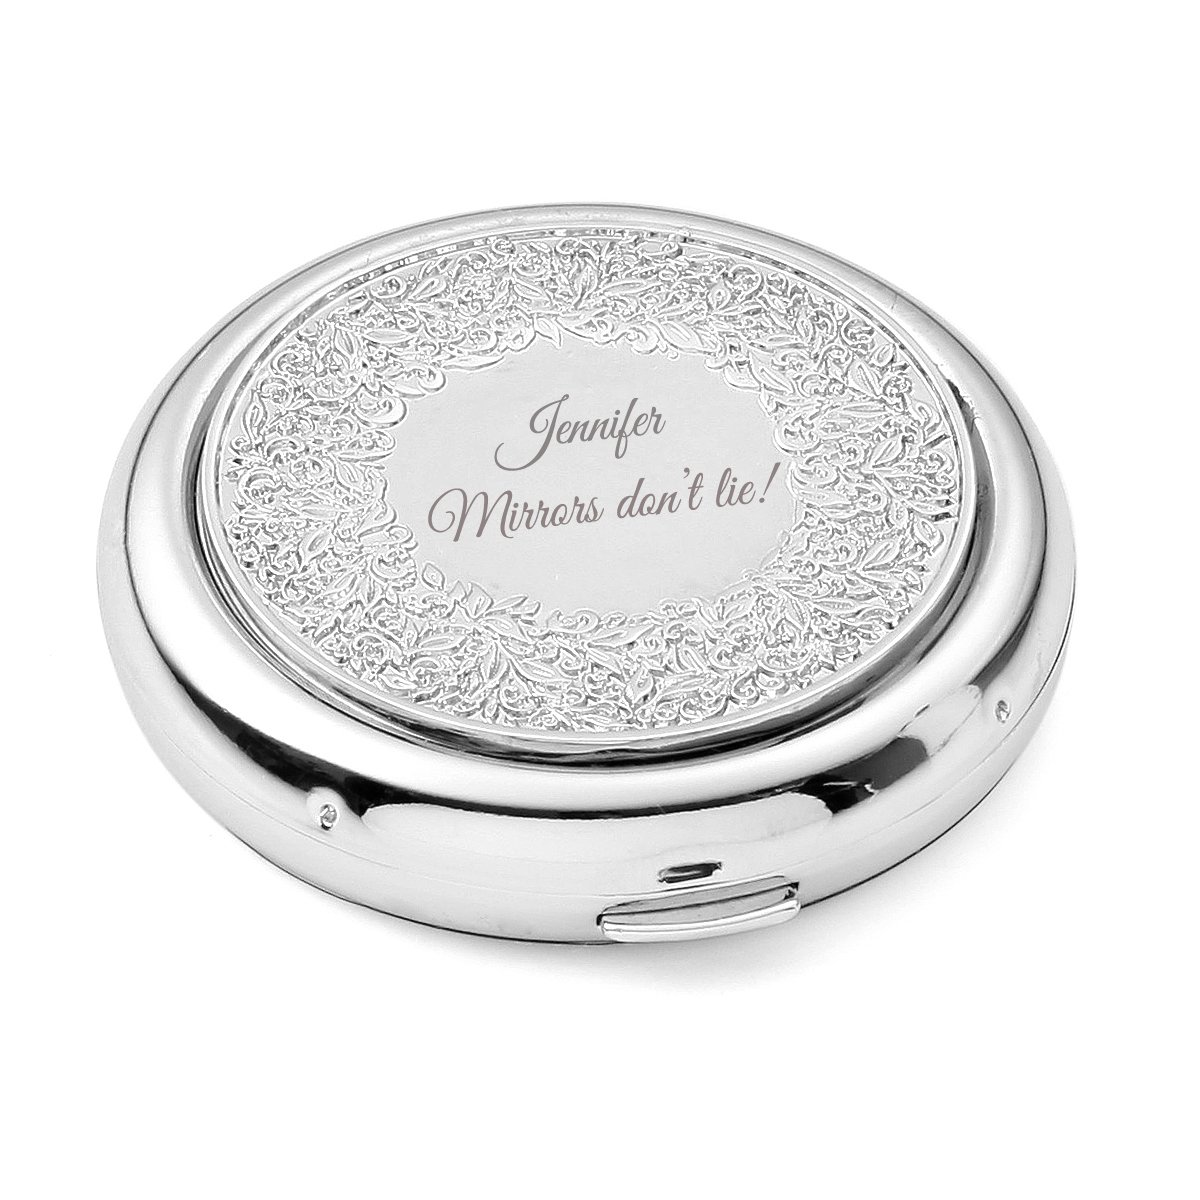 OnePlace Gifts Personalized Floral Compact, Bridesmaid Purse Pocket Makeup Mirror Foldable & Magnifying, Infinite Love, Affection, Renaissance, Venice, Unique Birthday Gift for Her, Customized by